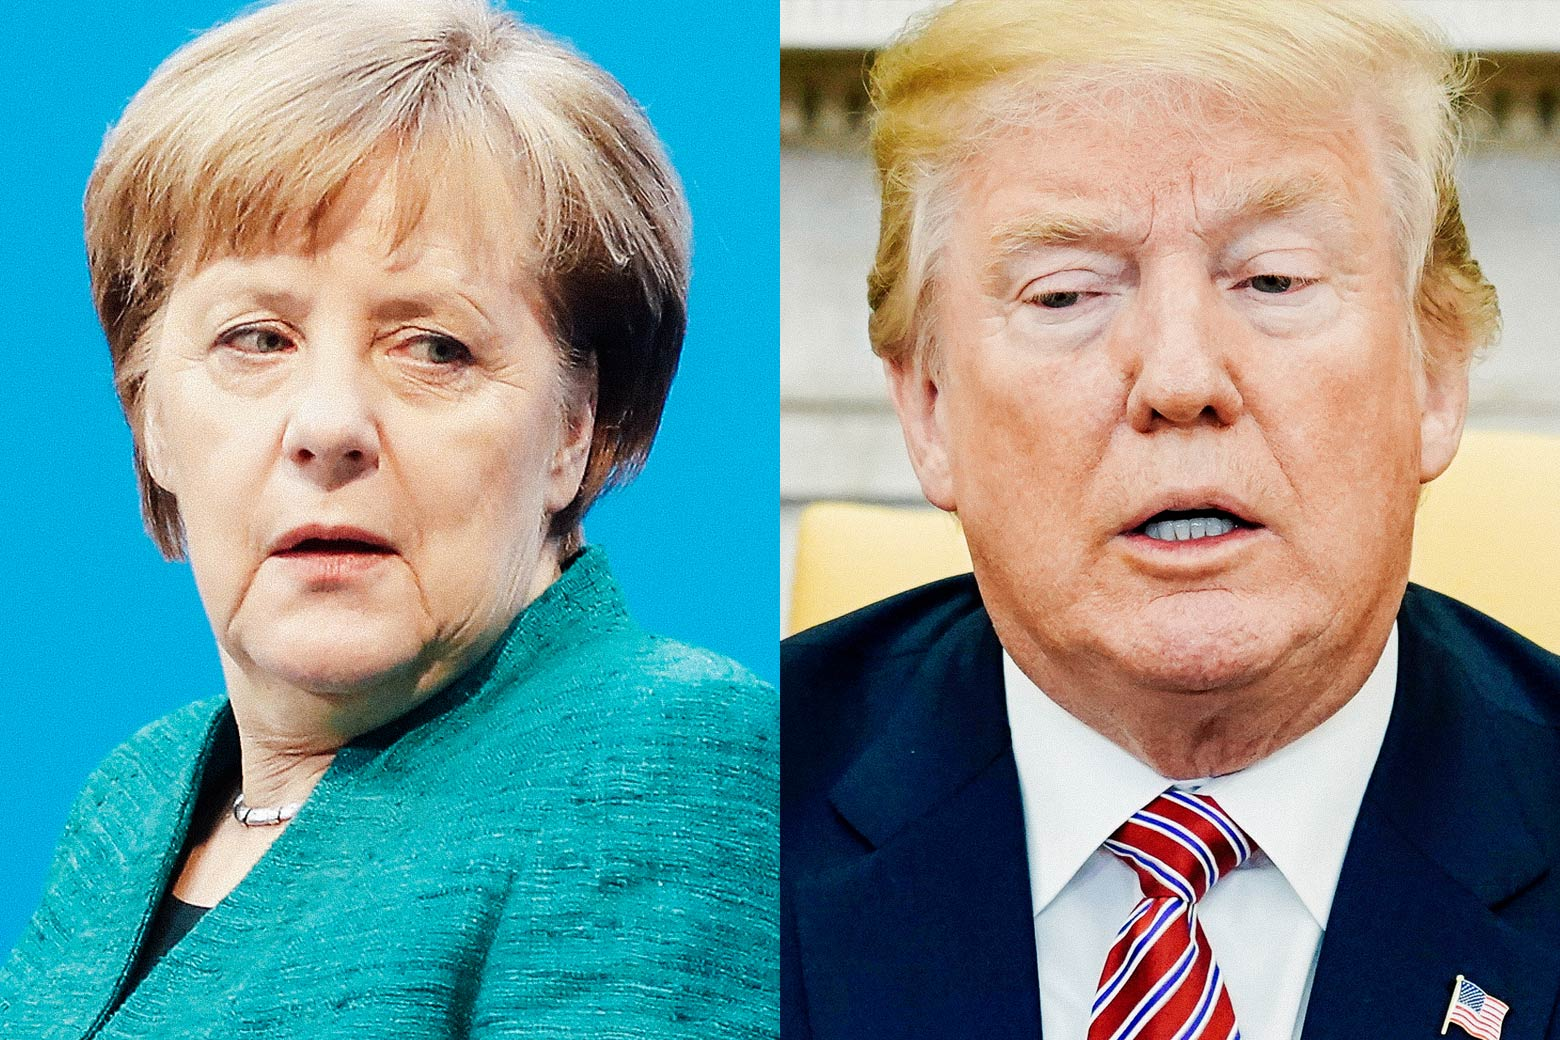 A side-by-side collage of Angela Merkel and Donald Trump.